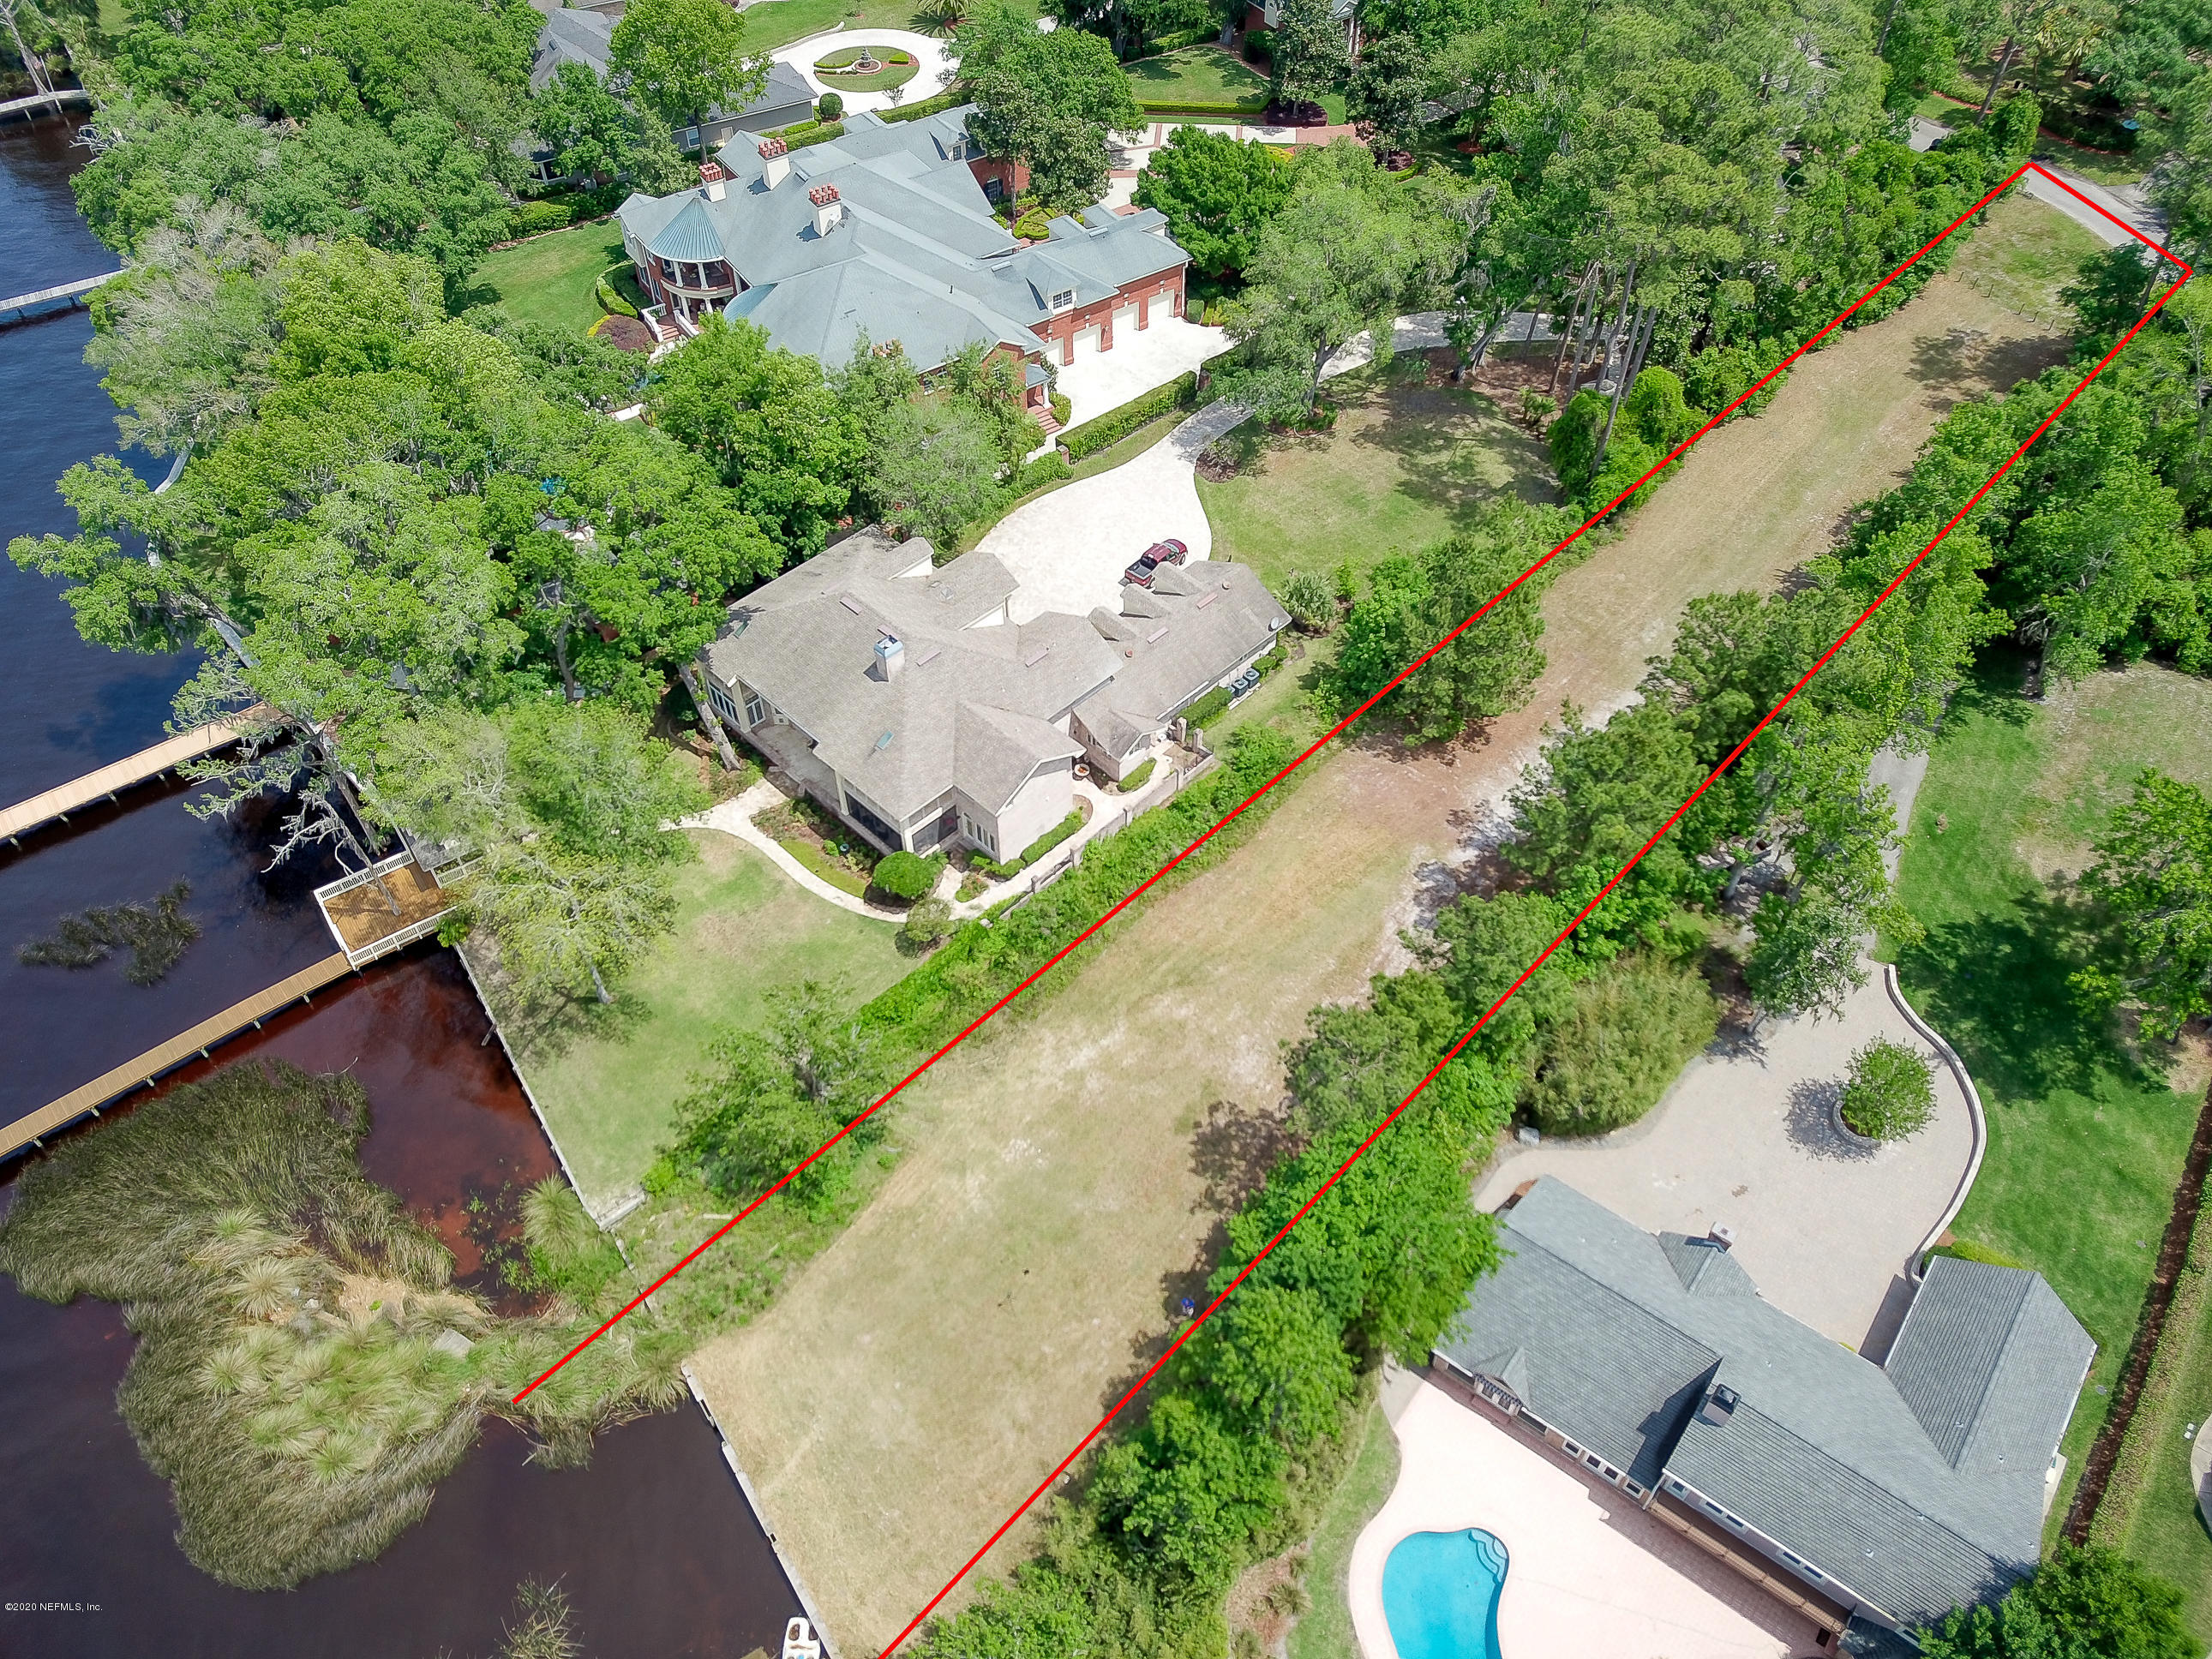 000 RIVERPLACE, JACKSONVILLE, FLORIDA 32223, ,Vacant land,For sale,RIVERPLACE,1034350